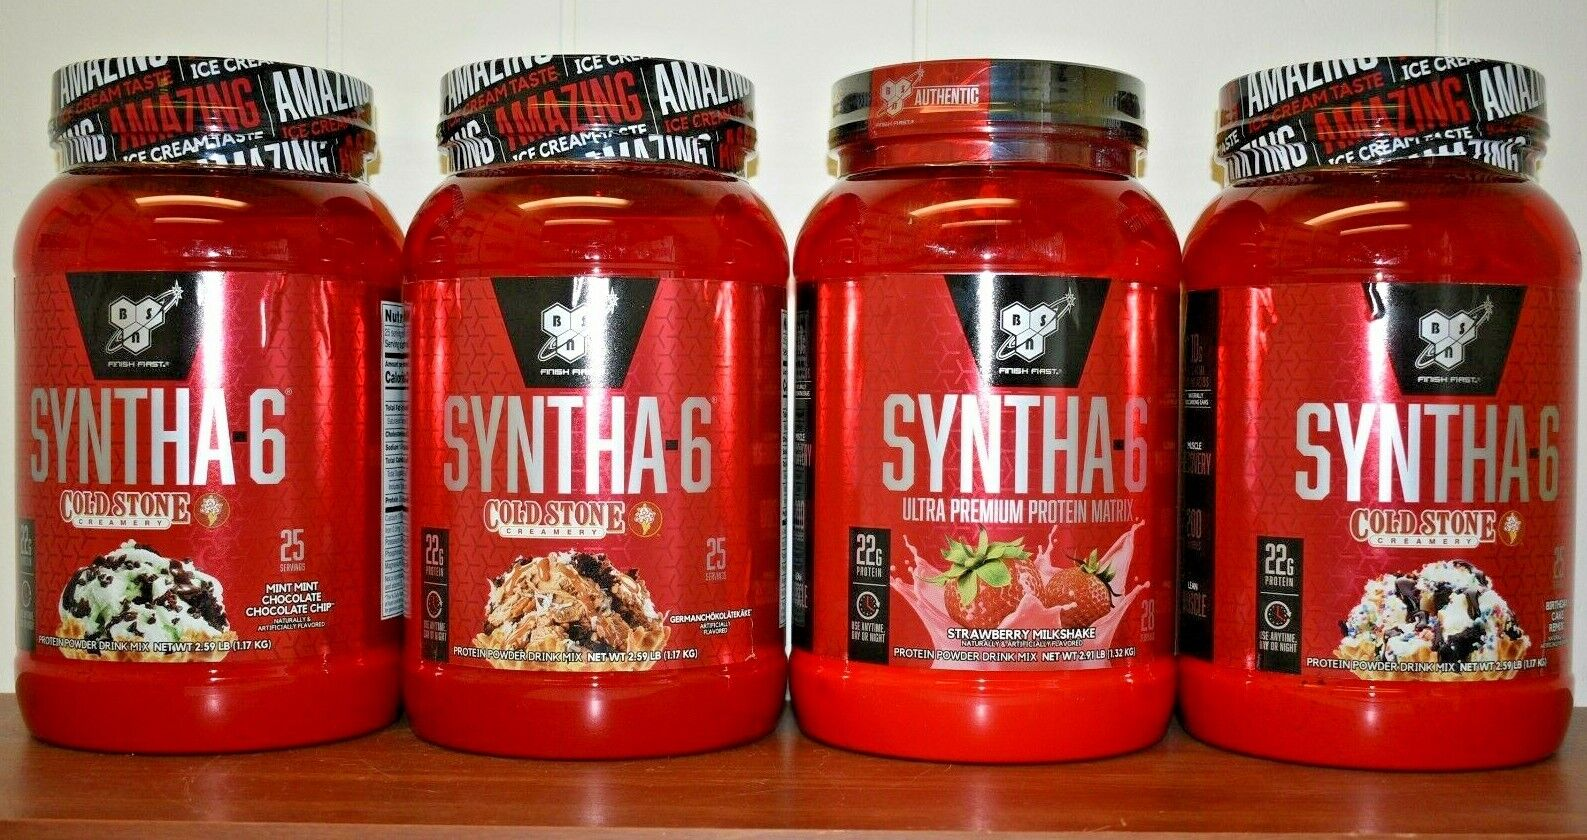 BSN Syntha-6 Cold Stone Creamery Protein Powder 2.59 LB 2.91